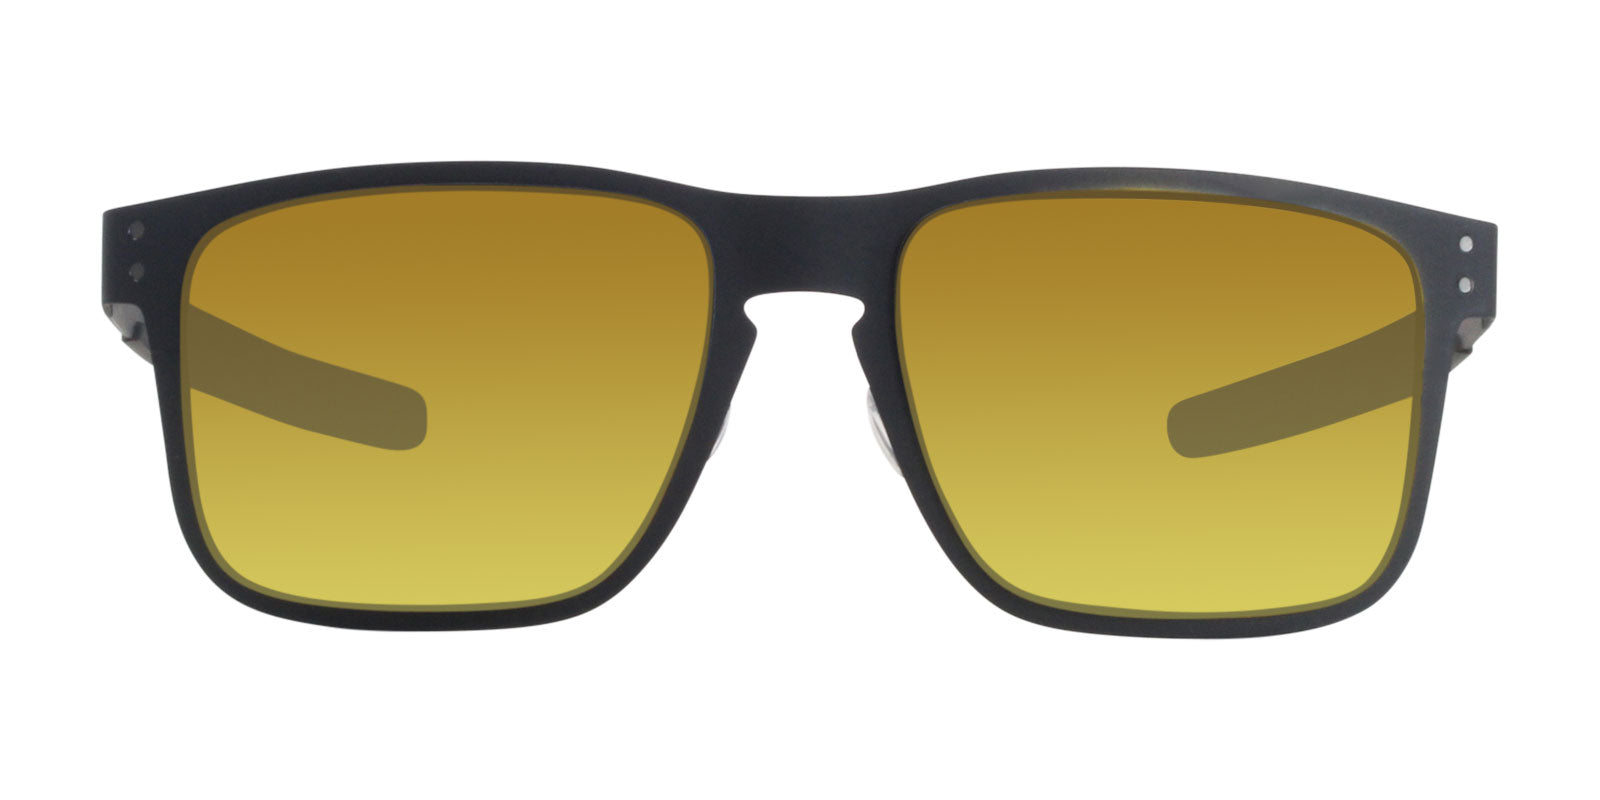 c2636fed52dd2 Oakley Holbrook Metal Black   Yellow Lens Mirror Sunglasses ...